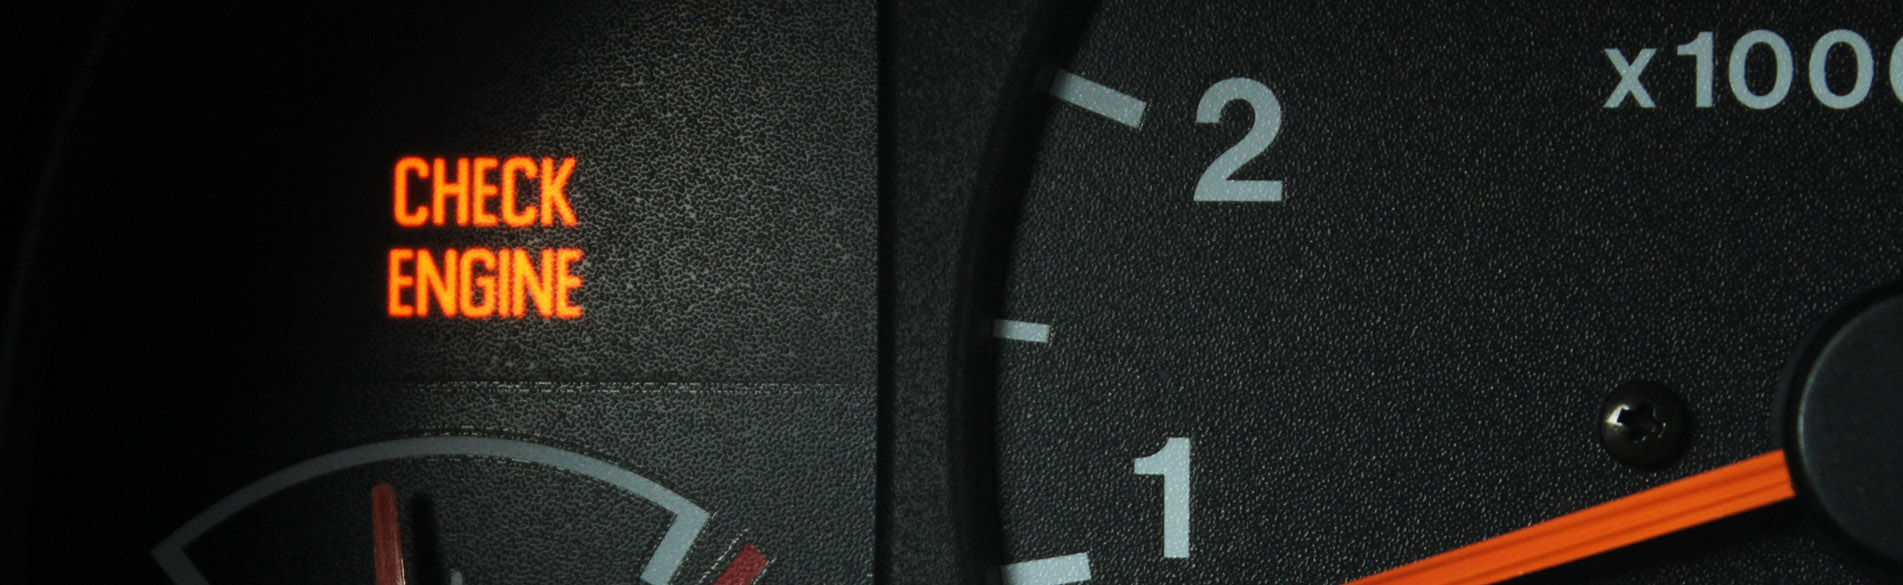 Check Engine Light Diagnostic Services in Golden, CO